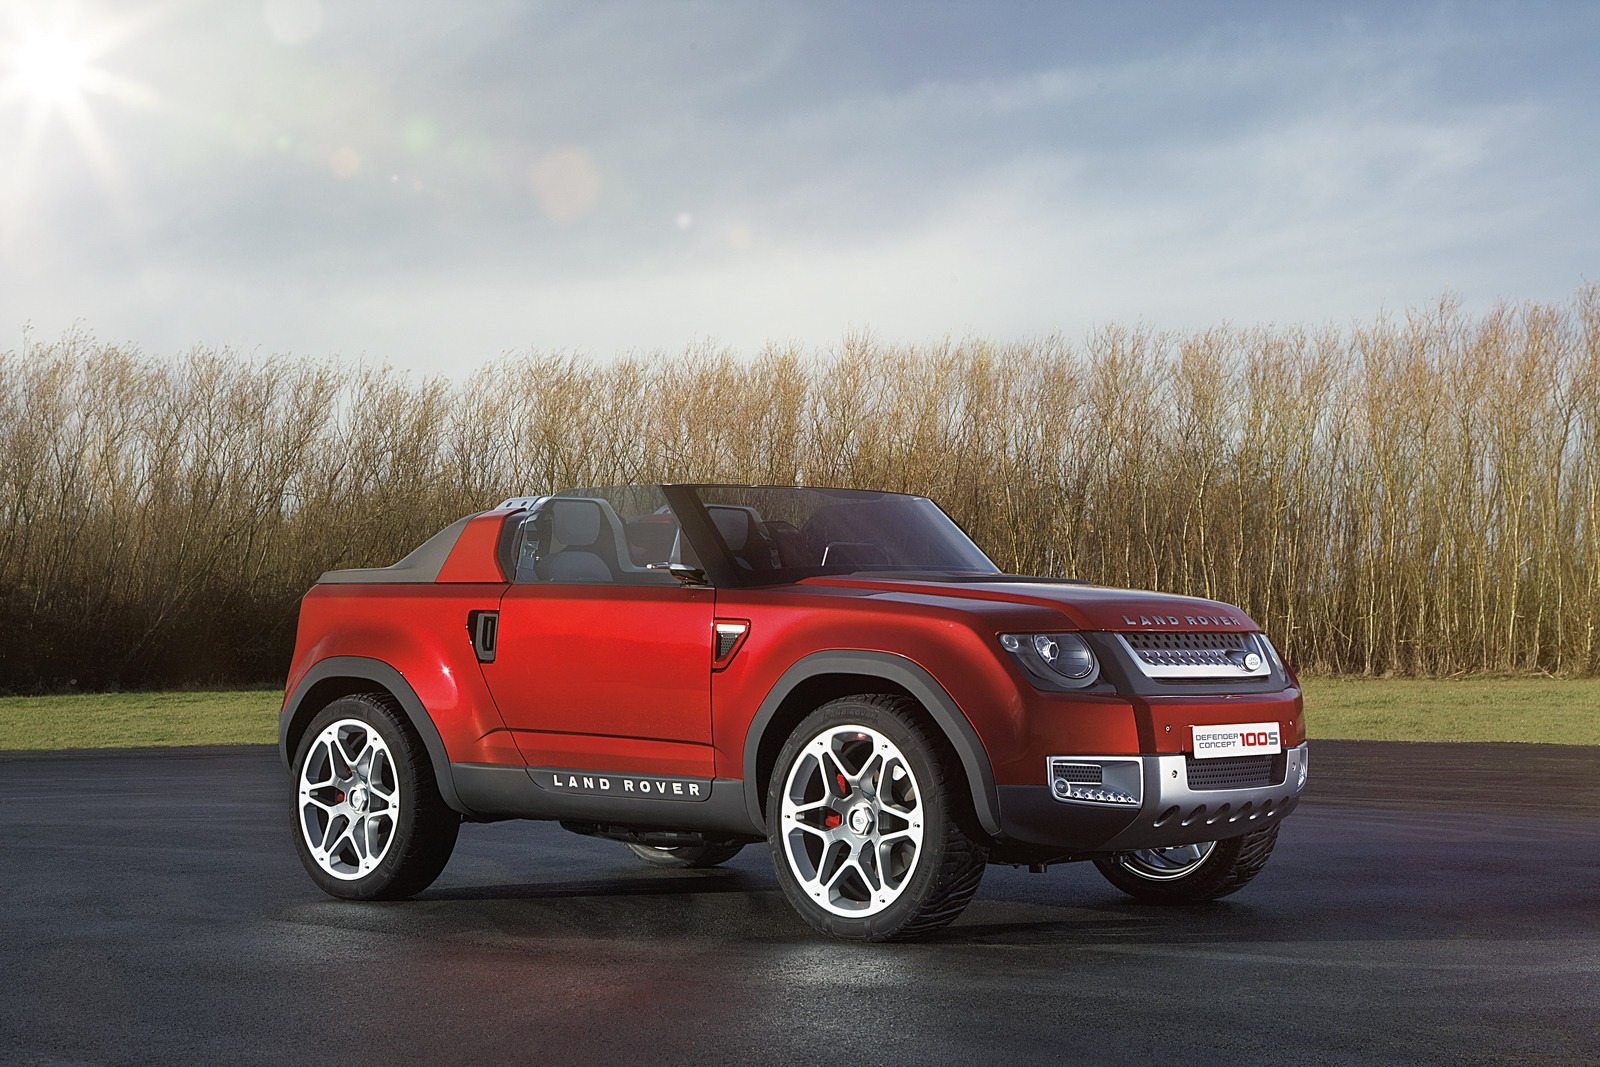 Land Rover DC100 Concepts Gain a Red Hue for New Delhi Auto Expo